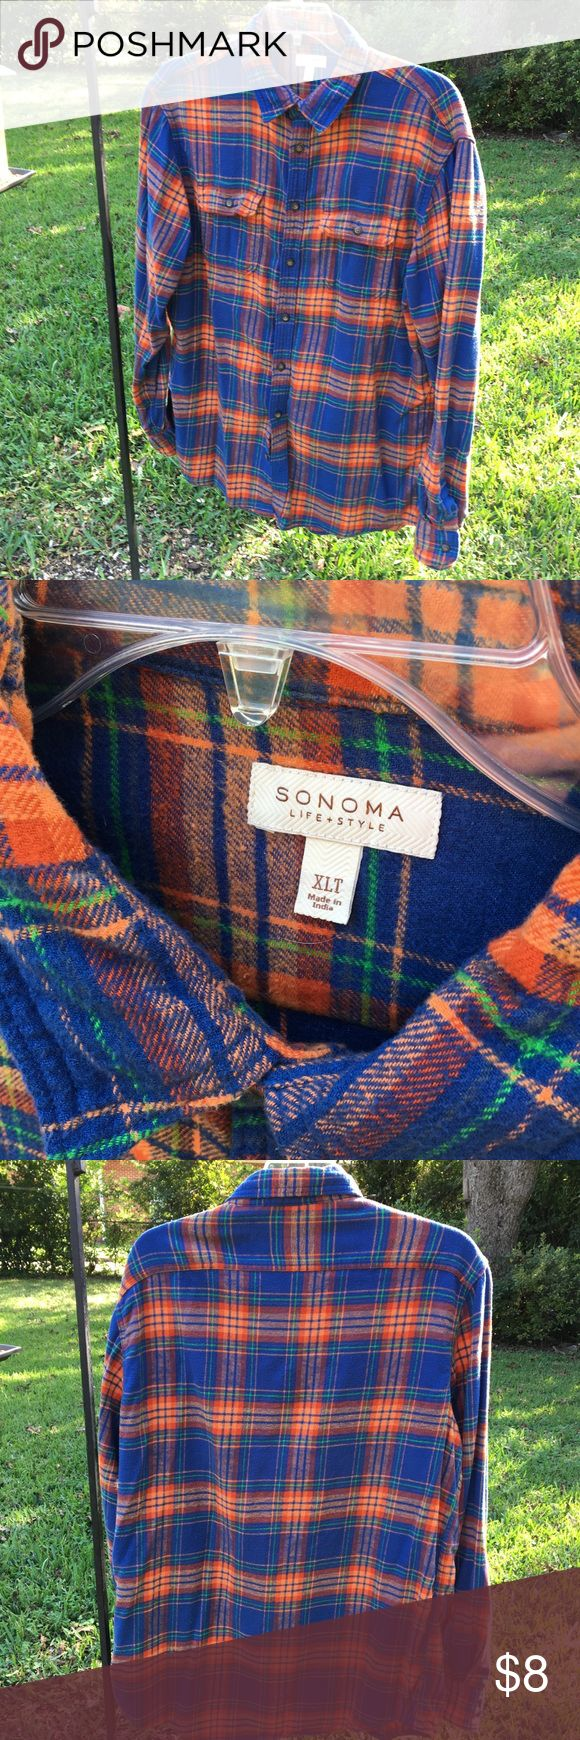 XLT Sonoma Flannel Men's Shirt EUC Sonoma Flannel Shirt. Very soft fabric with a beautiful orange and blue plaid. Looks brand new!!! Only worn 2 times. Size is XLT. Sonoma Shirts Casual Button Down Shirts